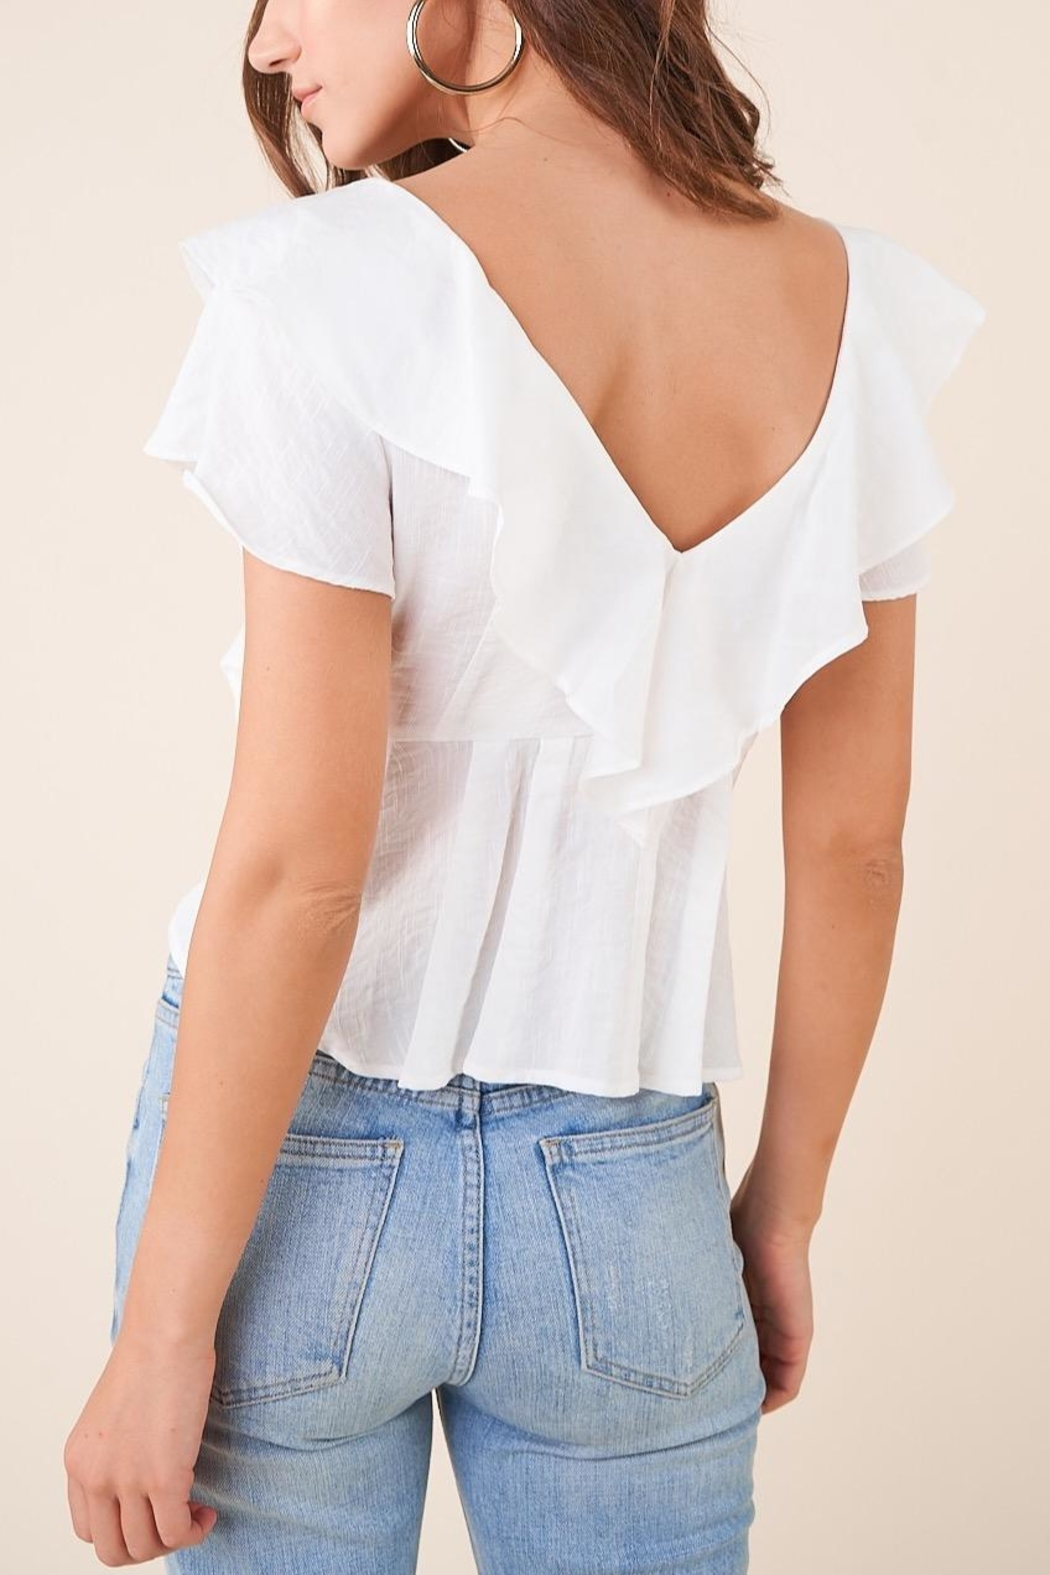 Sugarlips White Ruffle Button-Down Blouse - Back Cropped Image